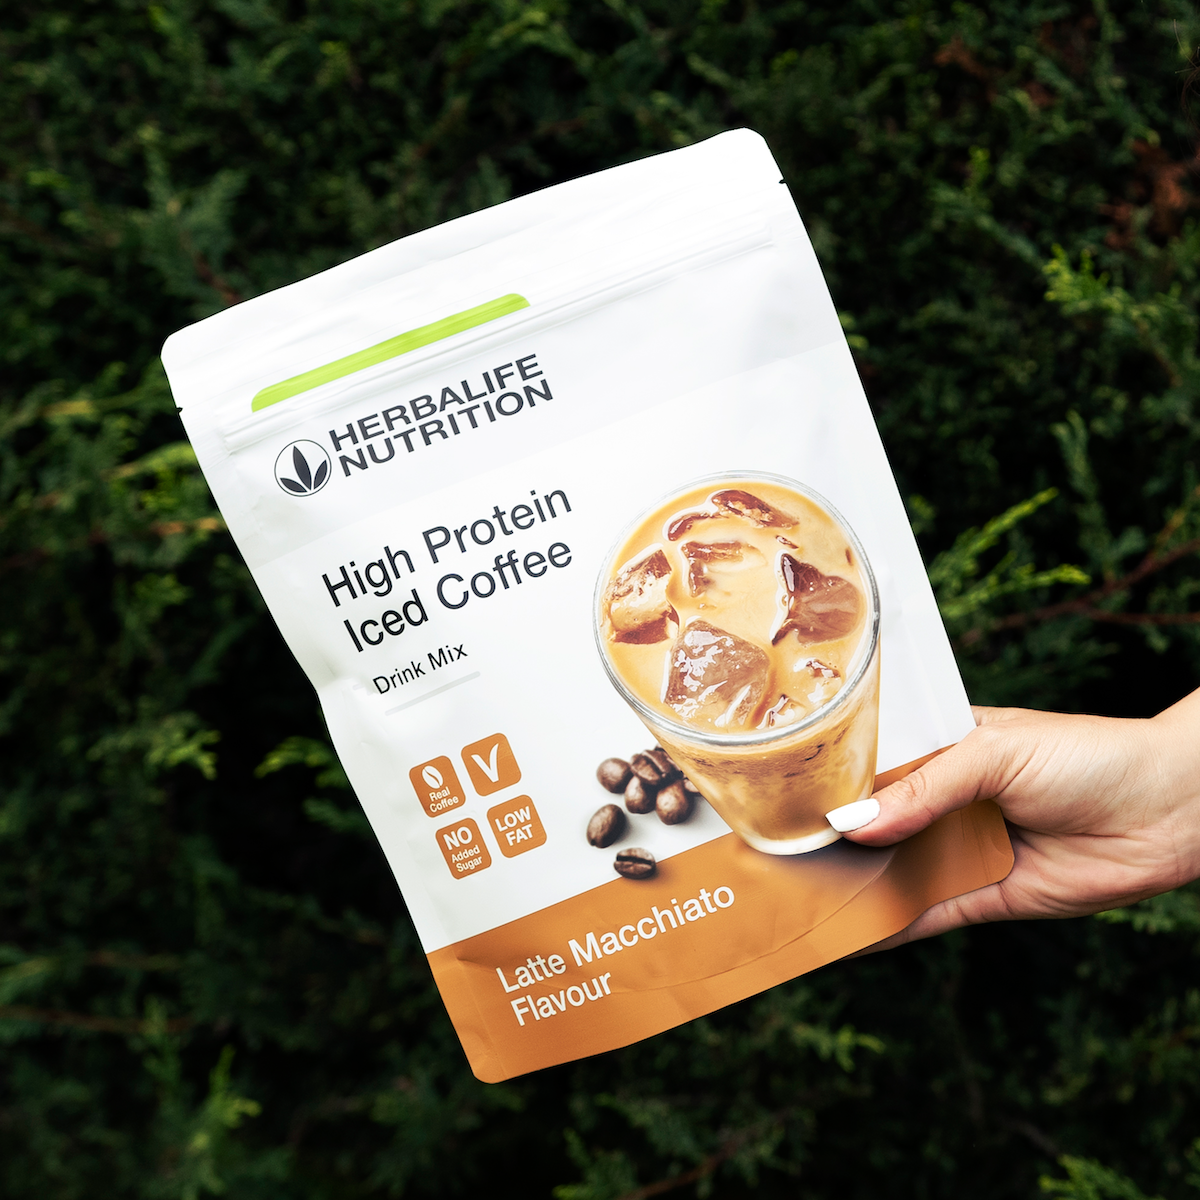 Herbalife High Protein Iced Coffee